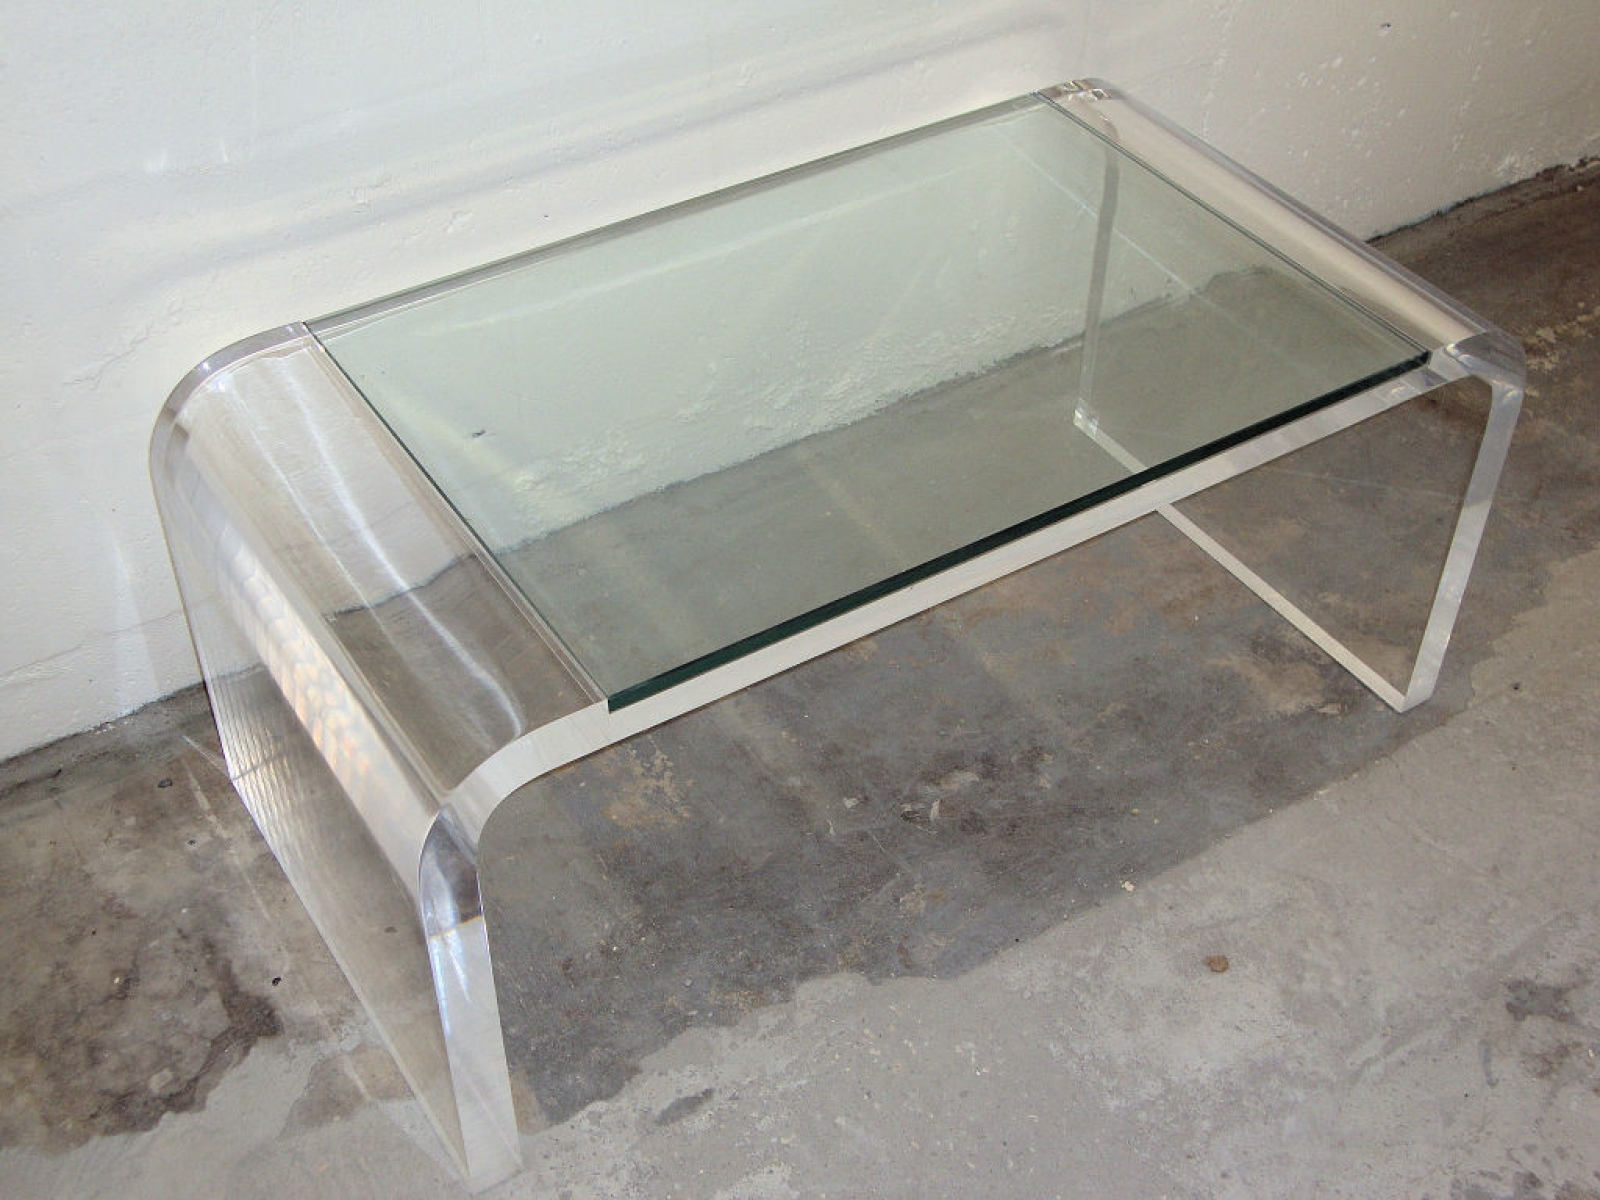 furniture futuristic acrylic coffee table for inspiring living room plexiglass side lucite end perspex round curved peekaboo clear plexigla tables fire pit couch rod iron nesting